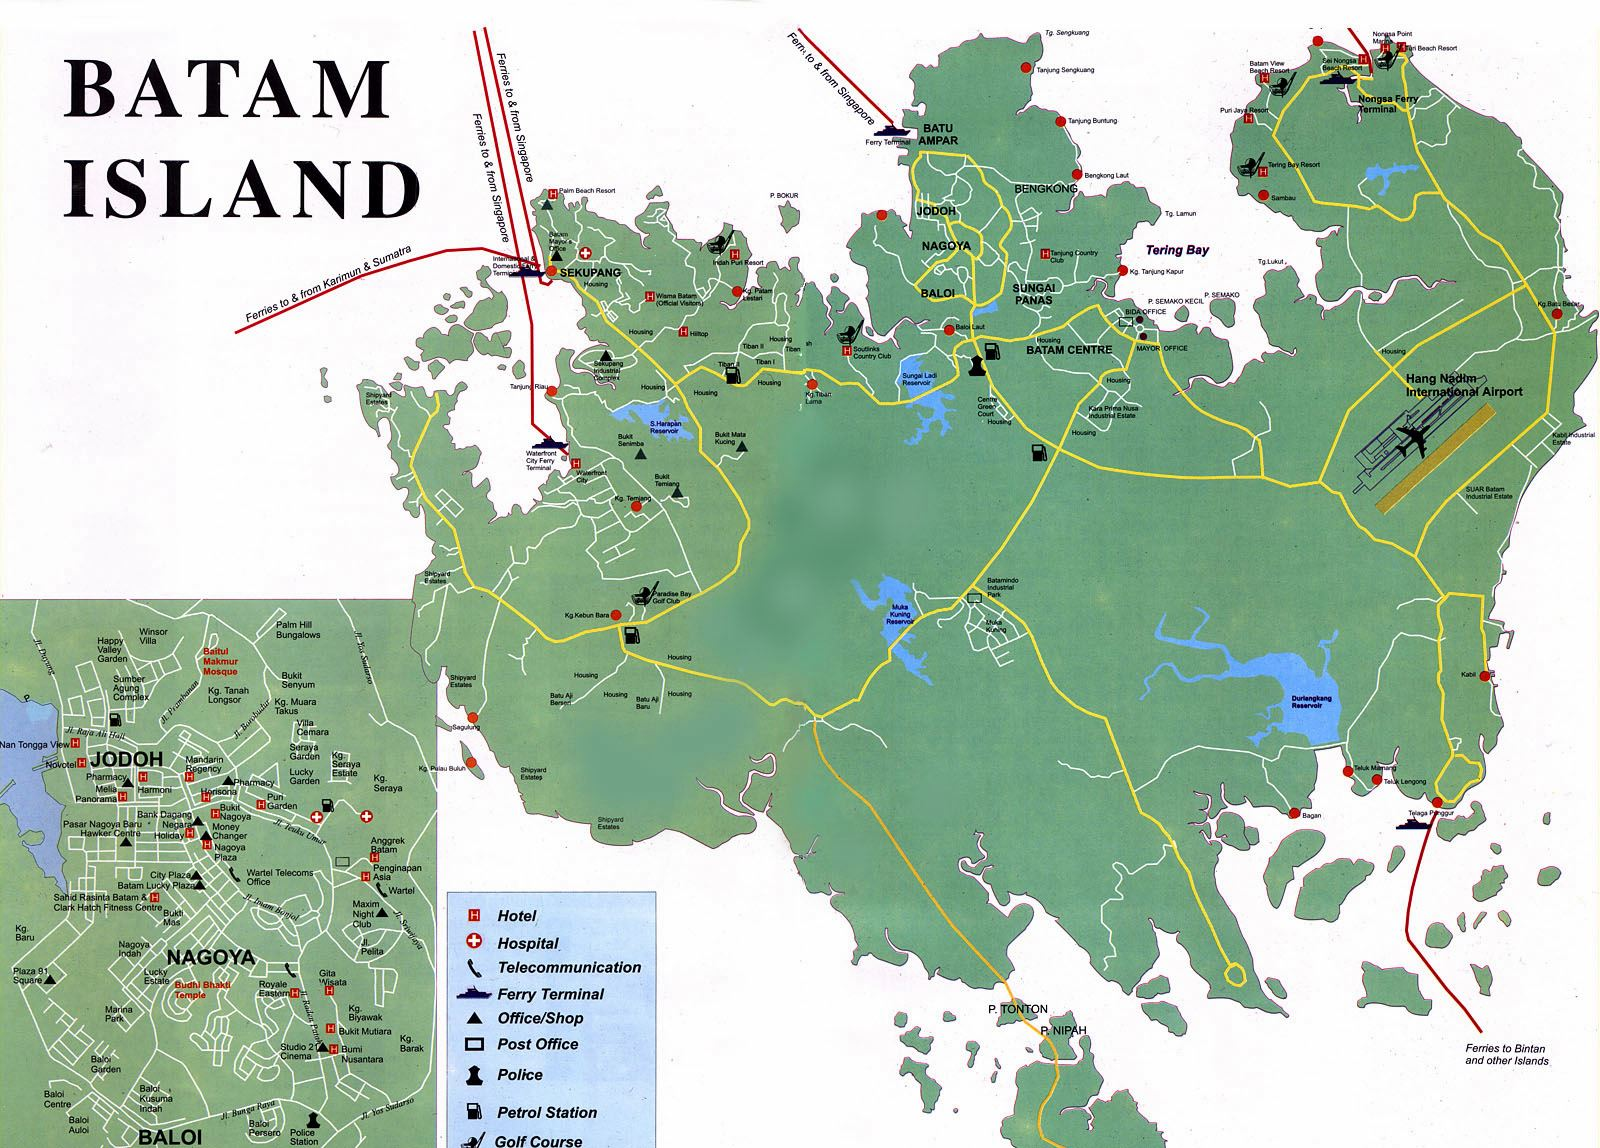 Large Batam Island Maps for Free Download and Print High